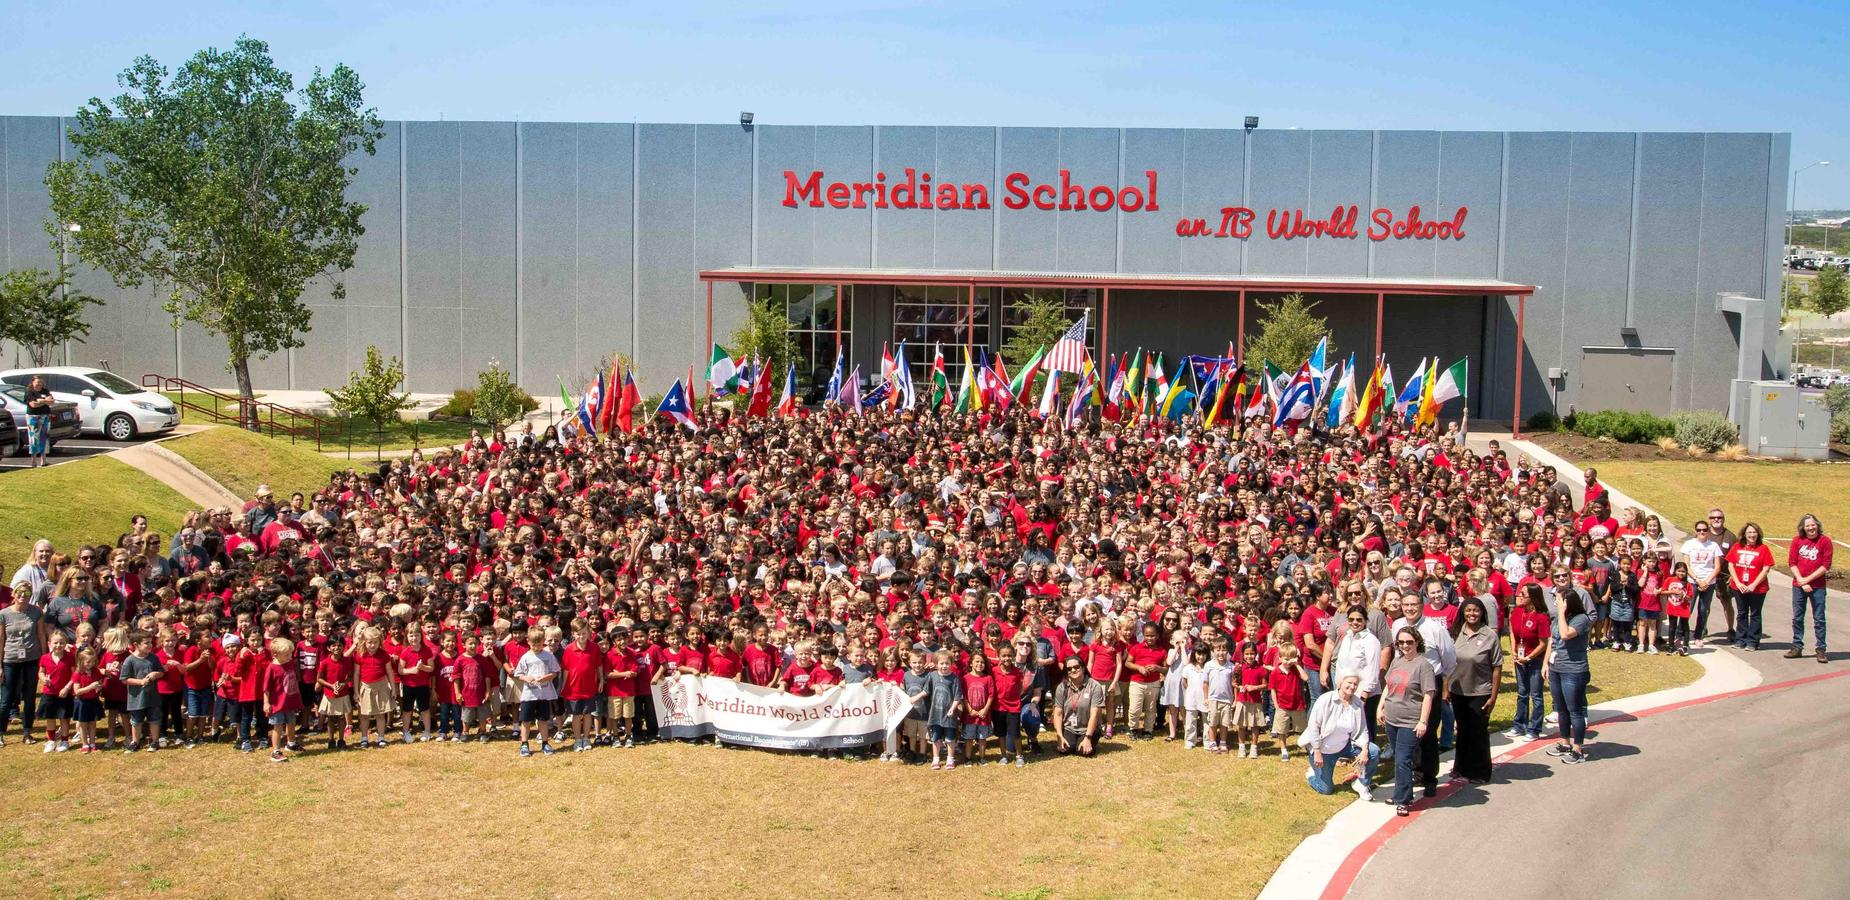 Meridian School slice of life photos